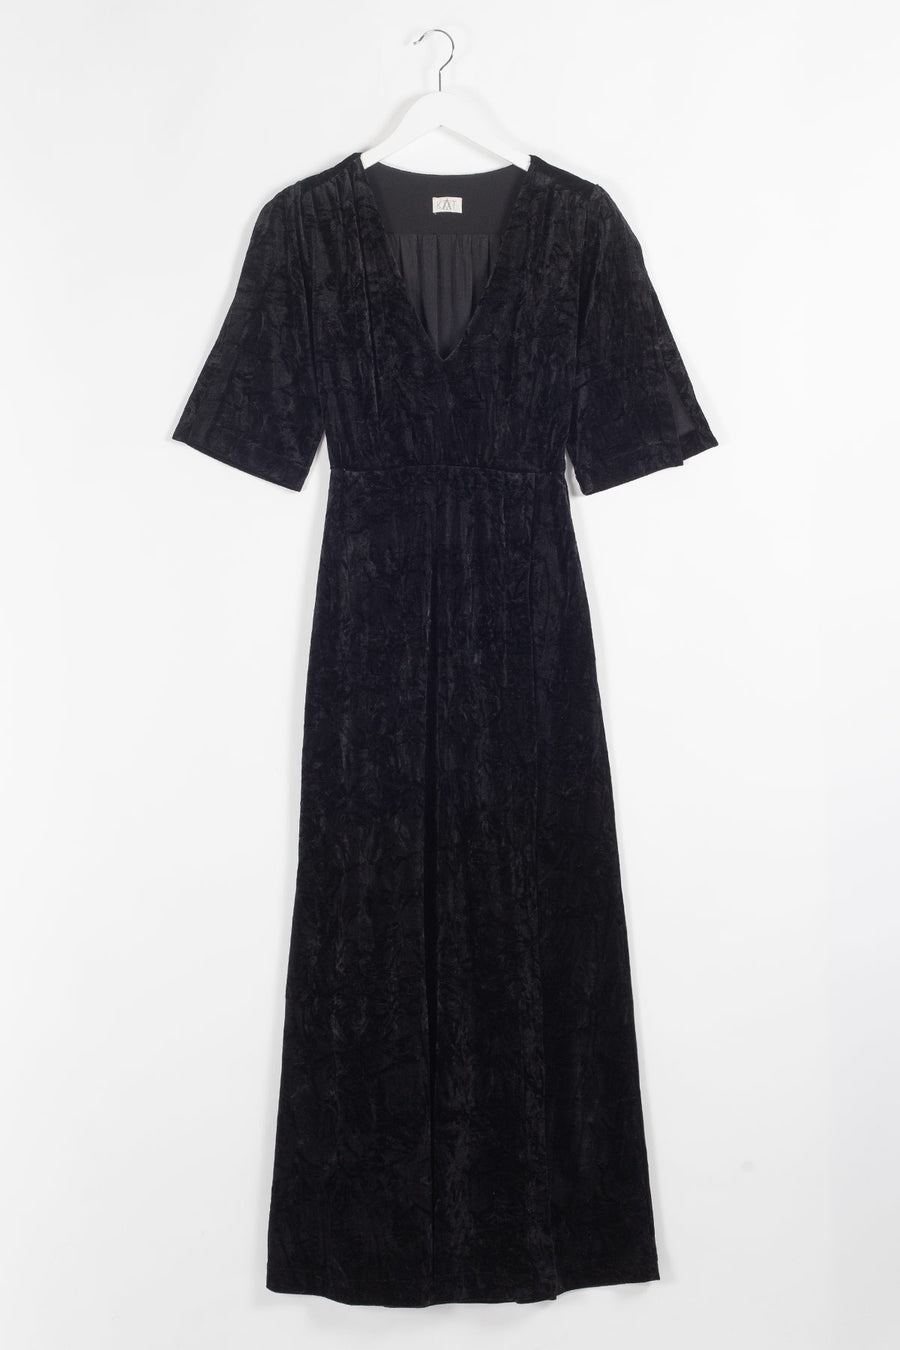 ALYSSA Velour Maxi Gala Dress - Black